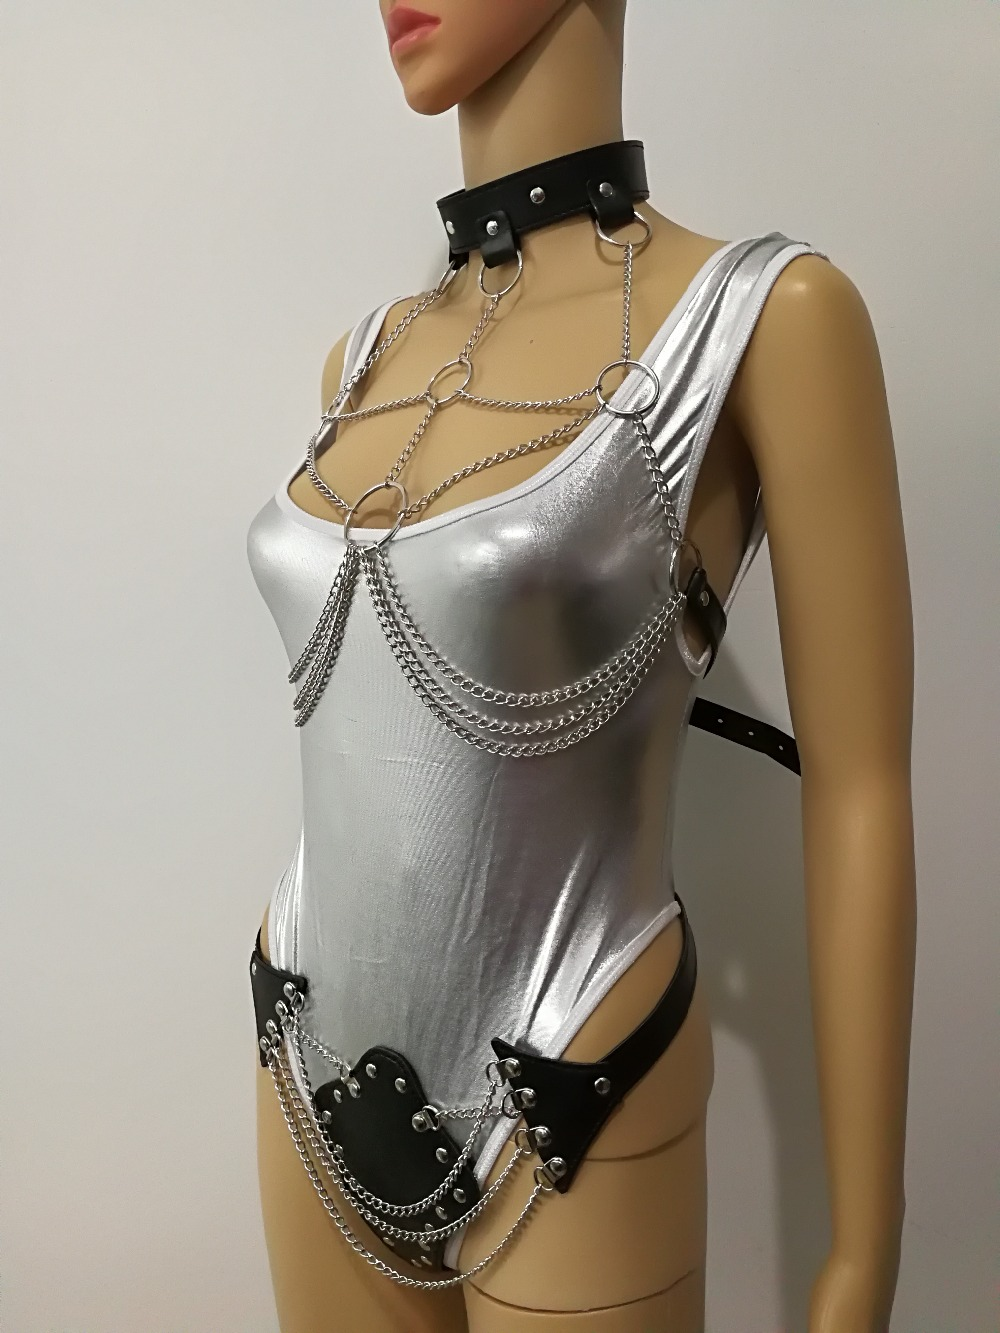 New Arrival B759 Women Leather Harness Silver Slave Bra Body Chains Sexy Leather Underwear Chains Jewelry Silver Color